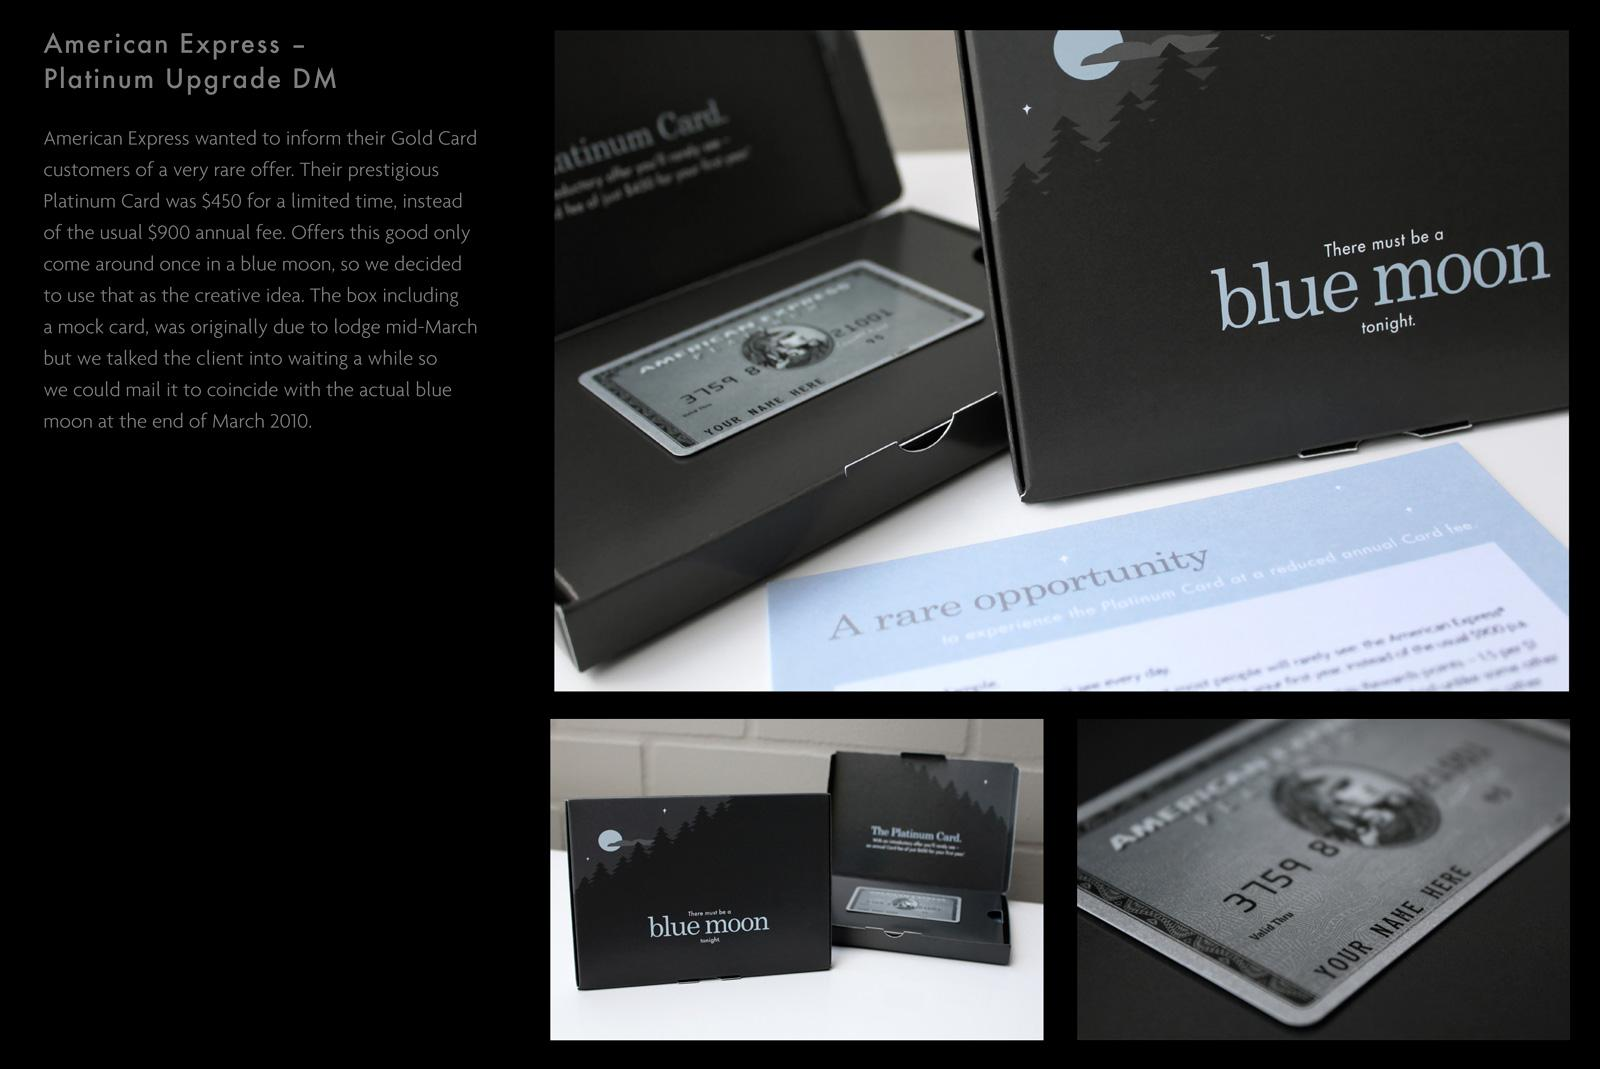 American Express Direct Ad -  Blue Moon Platinum Upgrade DM